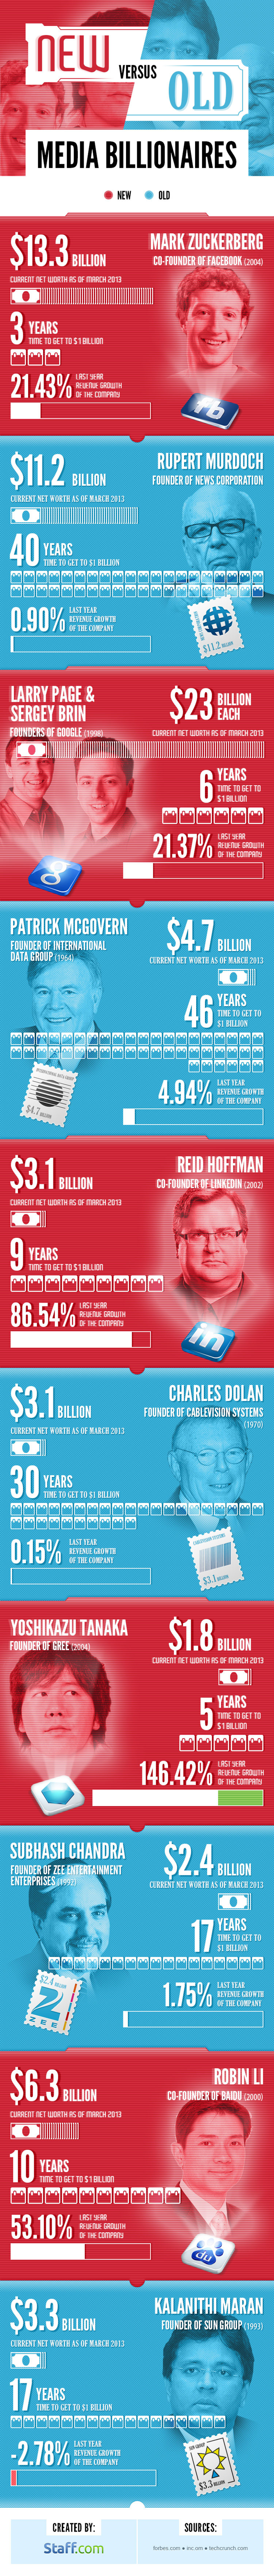 Mark Zuckerberg versus Rupert Murdoch (New vs Old Media Billionaires) Infographic